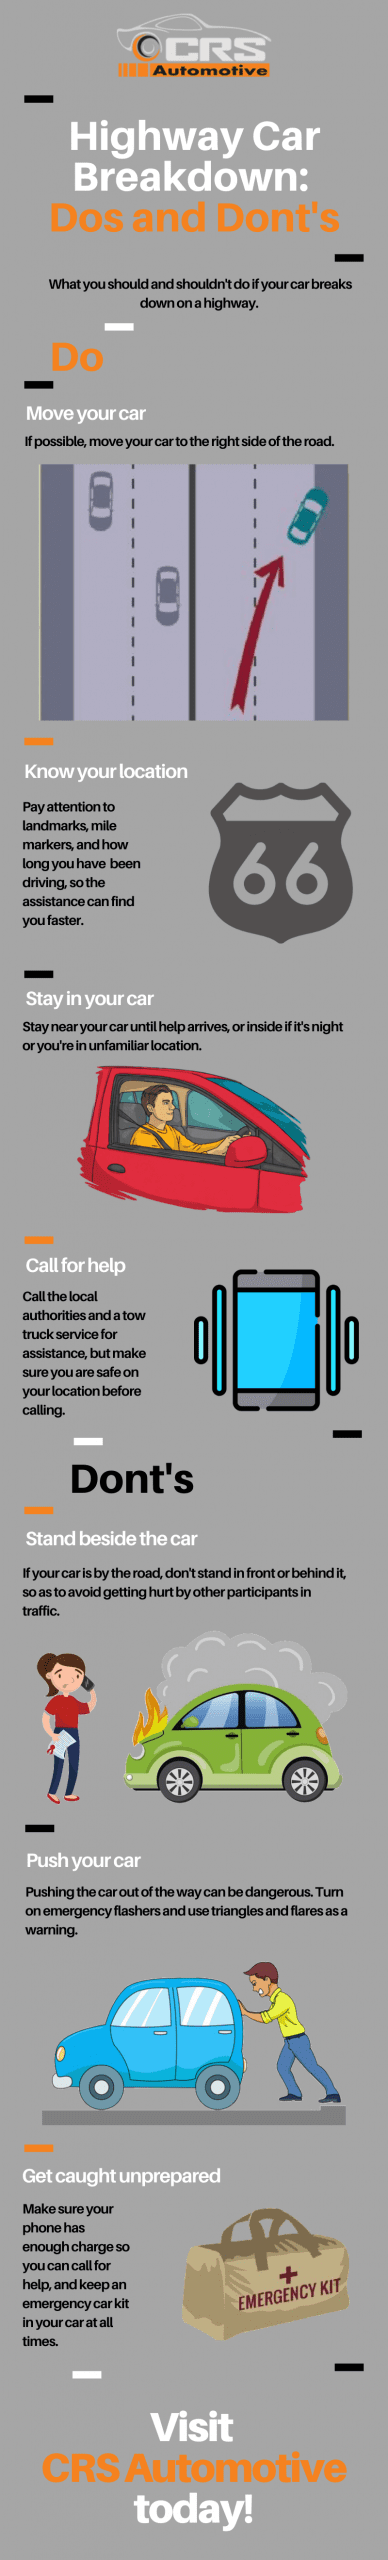 Highway car breakdown infographic